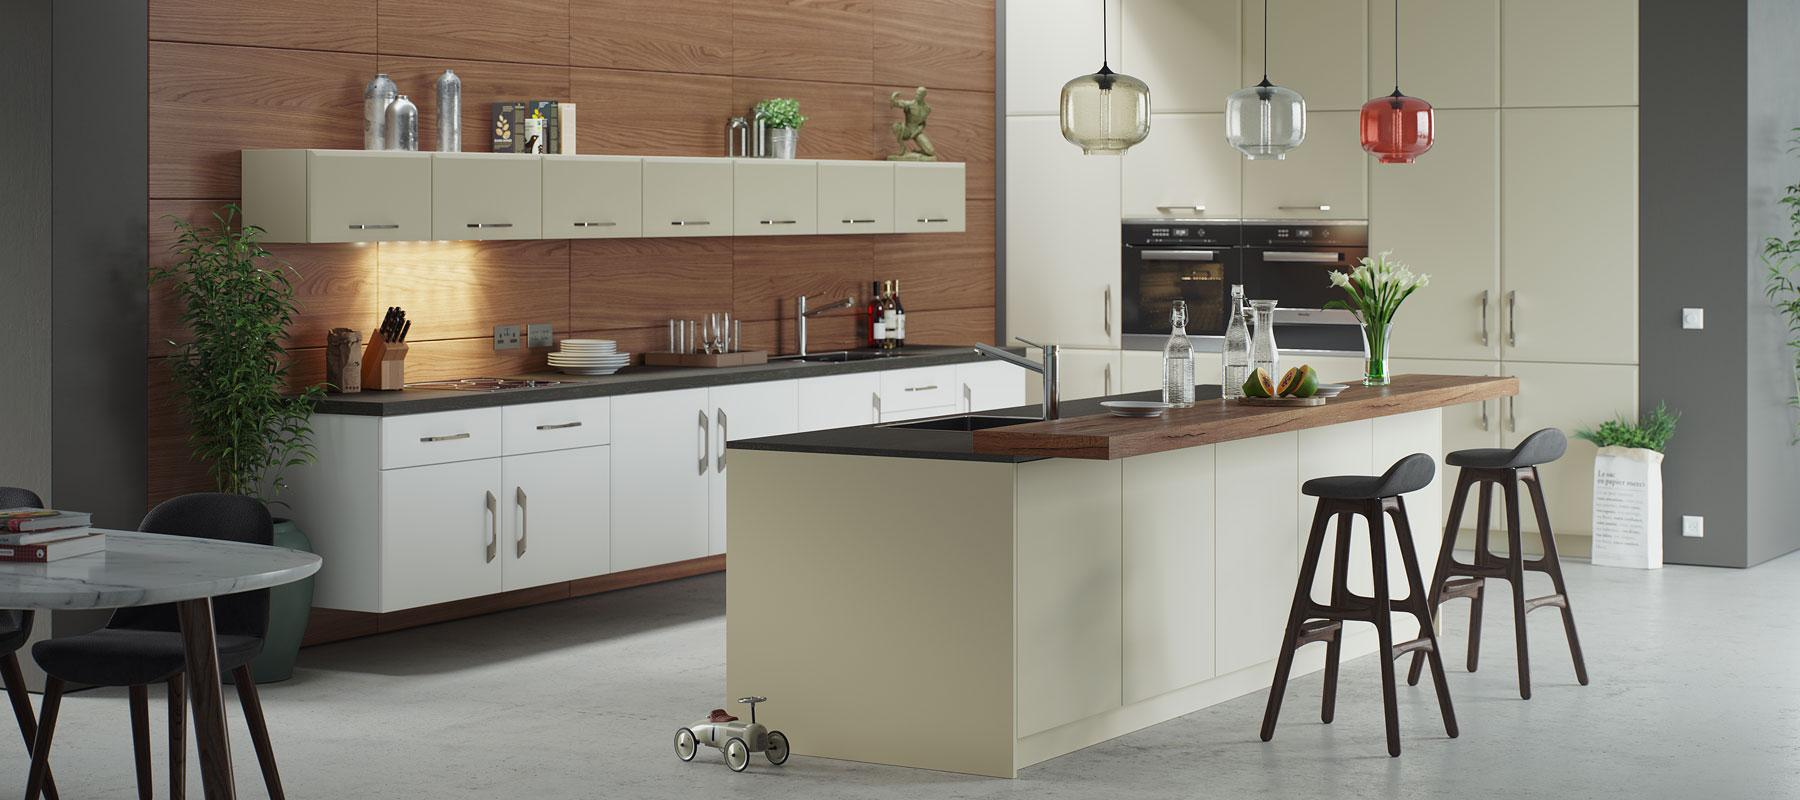 Dream Door Kitchens Mersey Modern Replacement Kitchen Doors Dream Doors